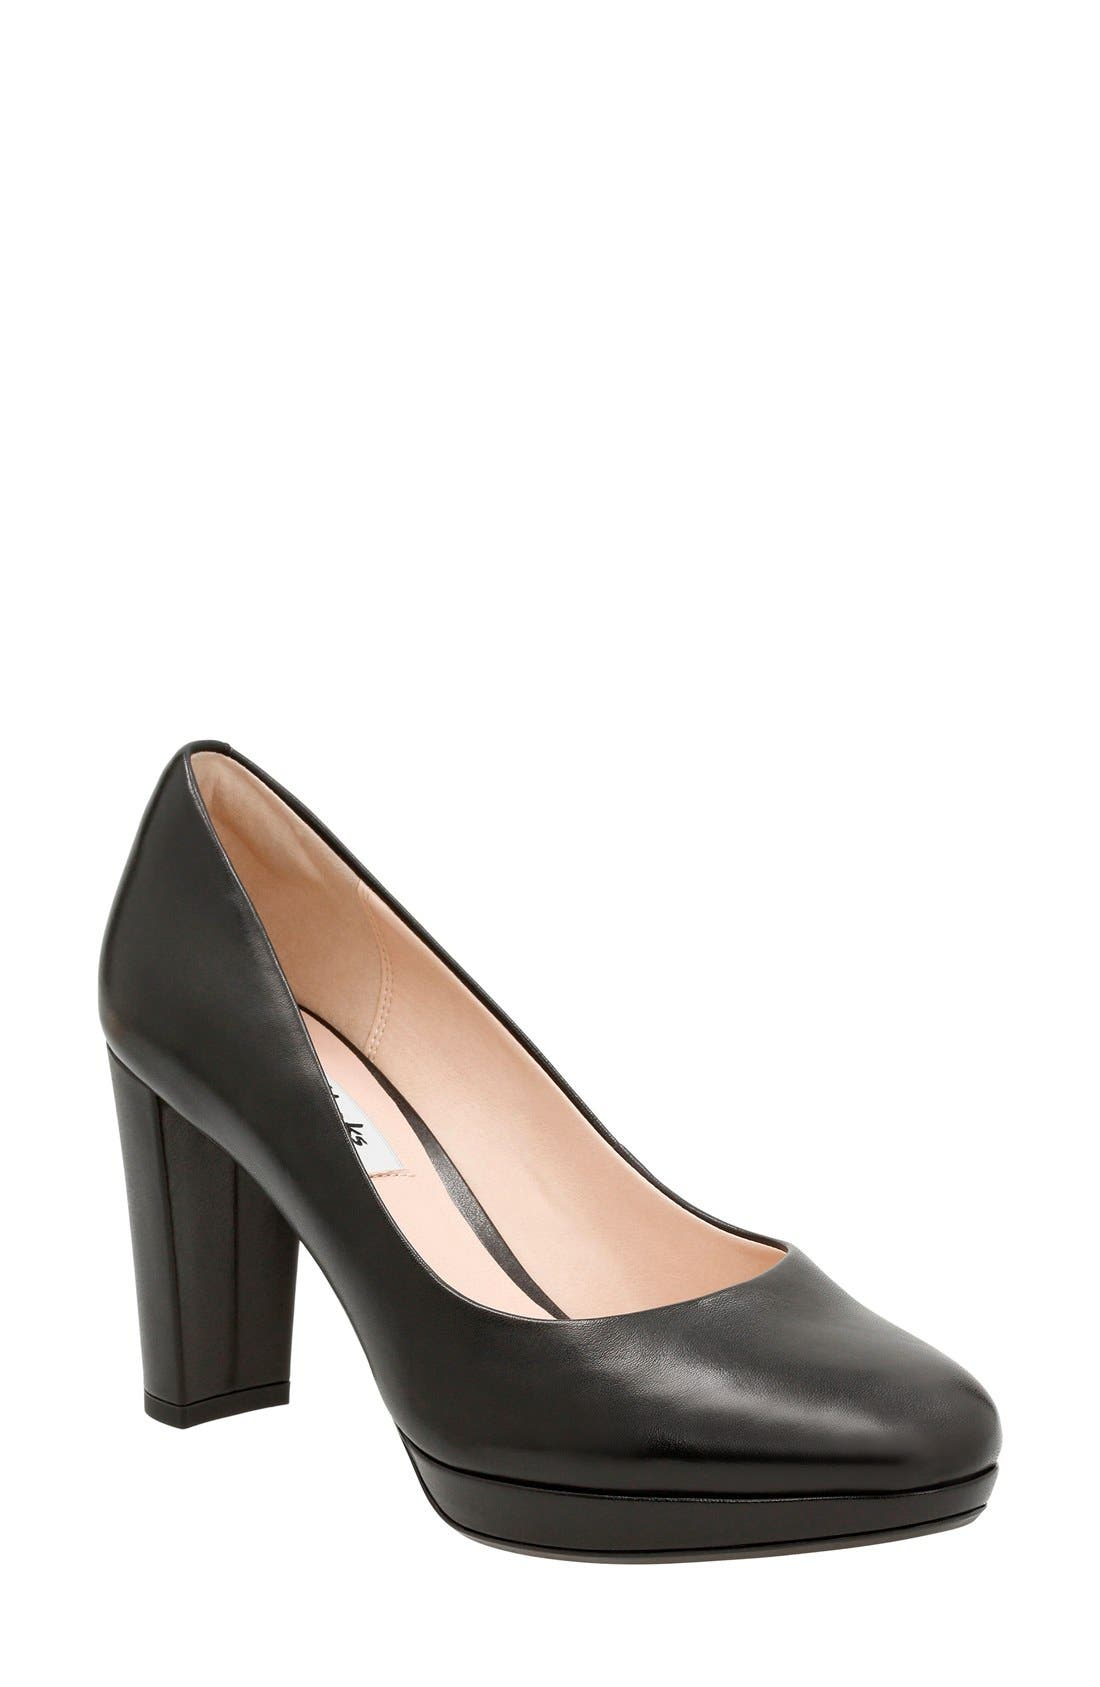 Kendra Sienna Almond Toe Pump,                             Main thumbnail 1, color,                             Black Leather